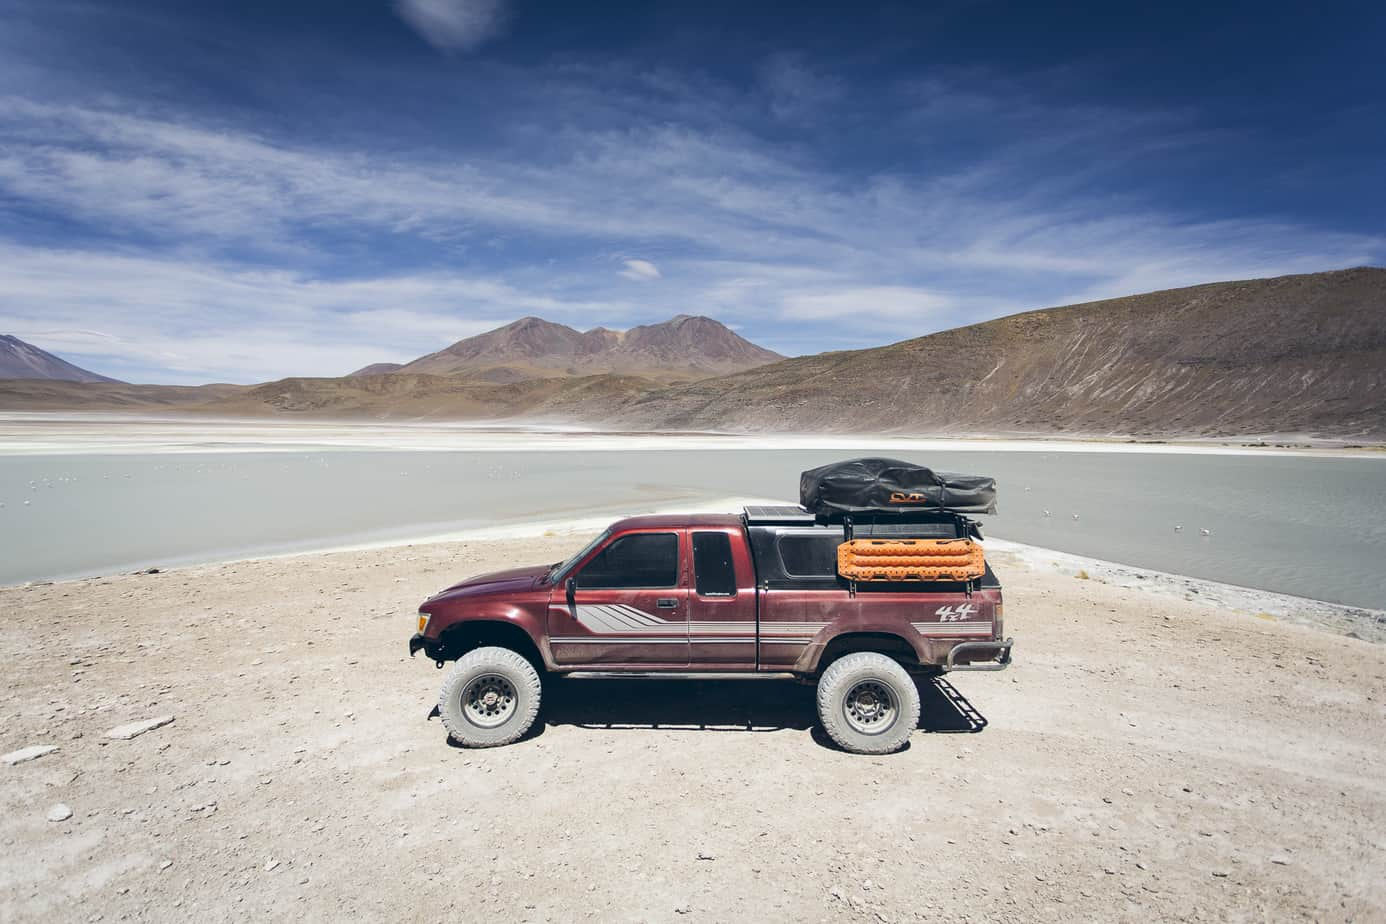 d2g_expo_lagunas_route_day_2-13